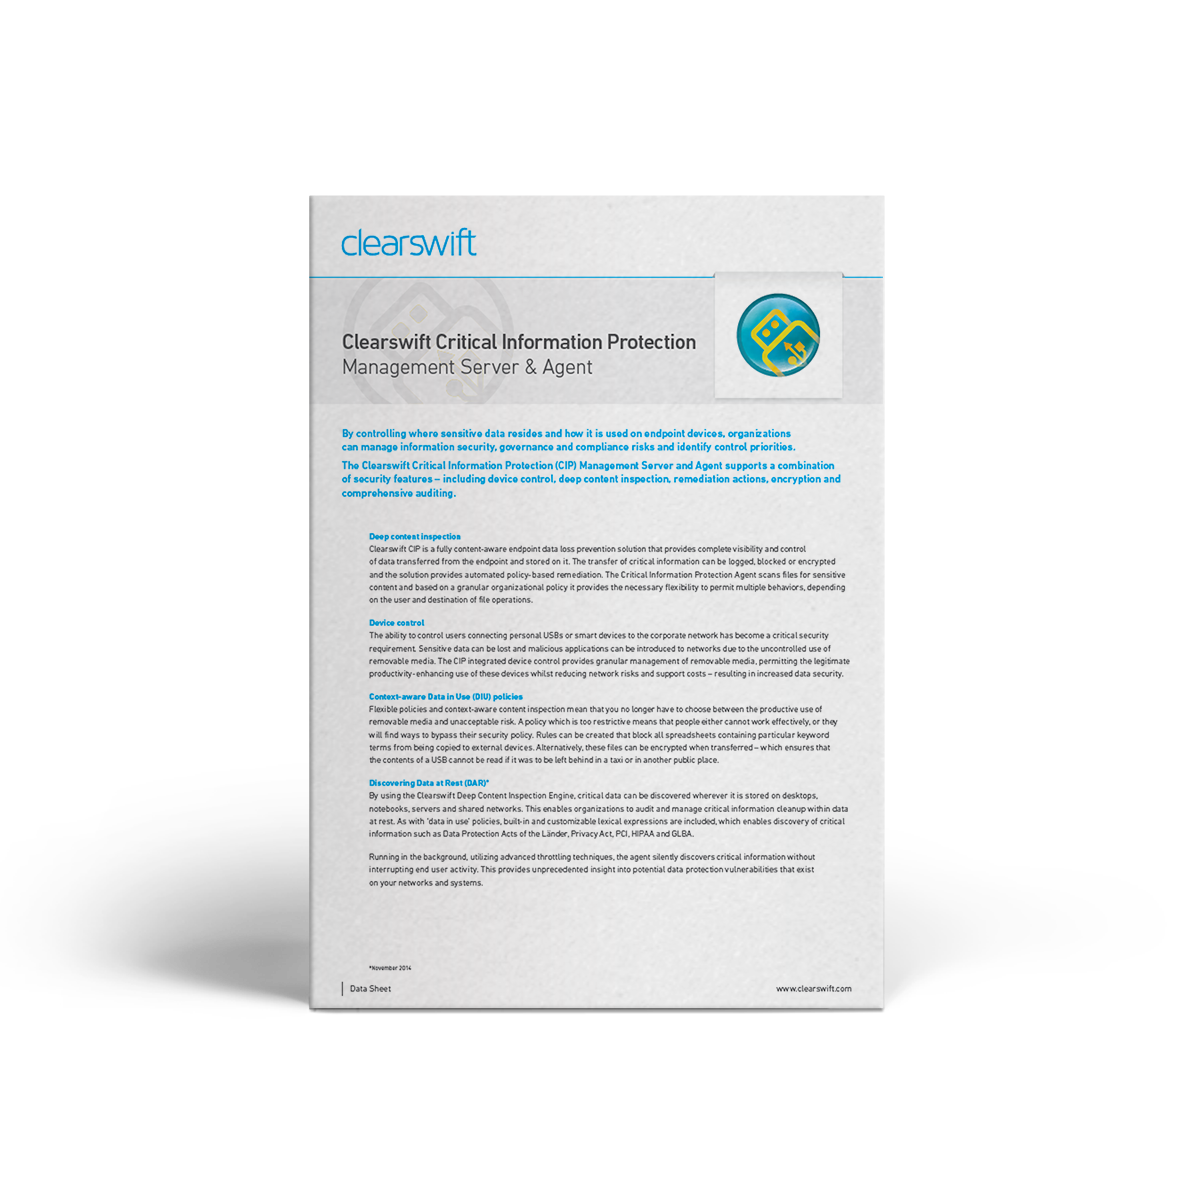 Clearswift CIP datasheet